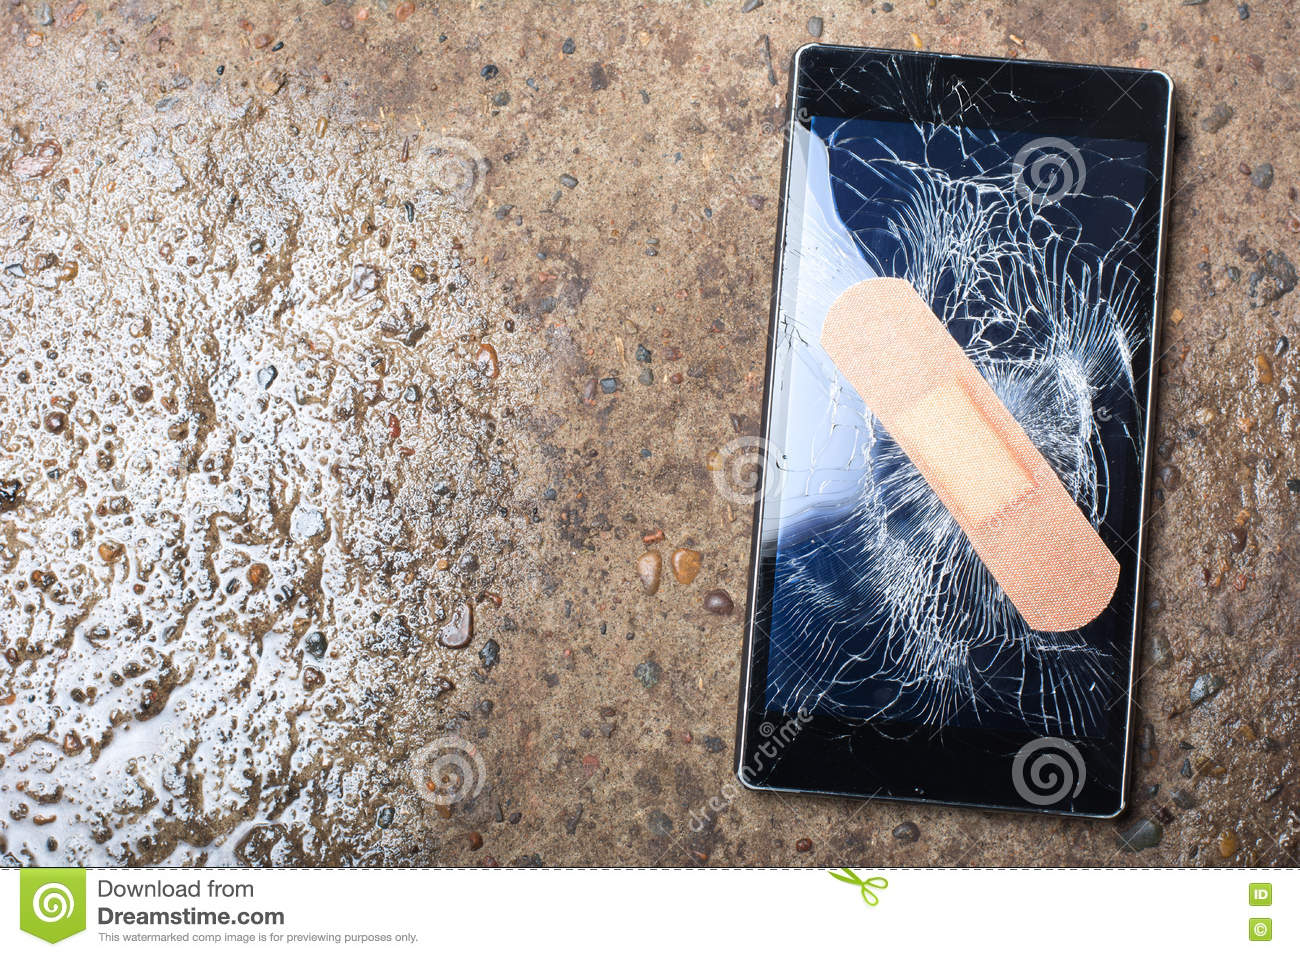 Broken Phone with cracked screen fixed with sticking plaster. Co